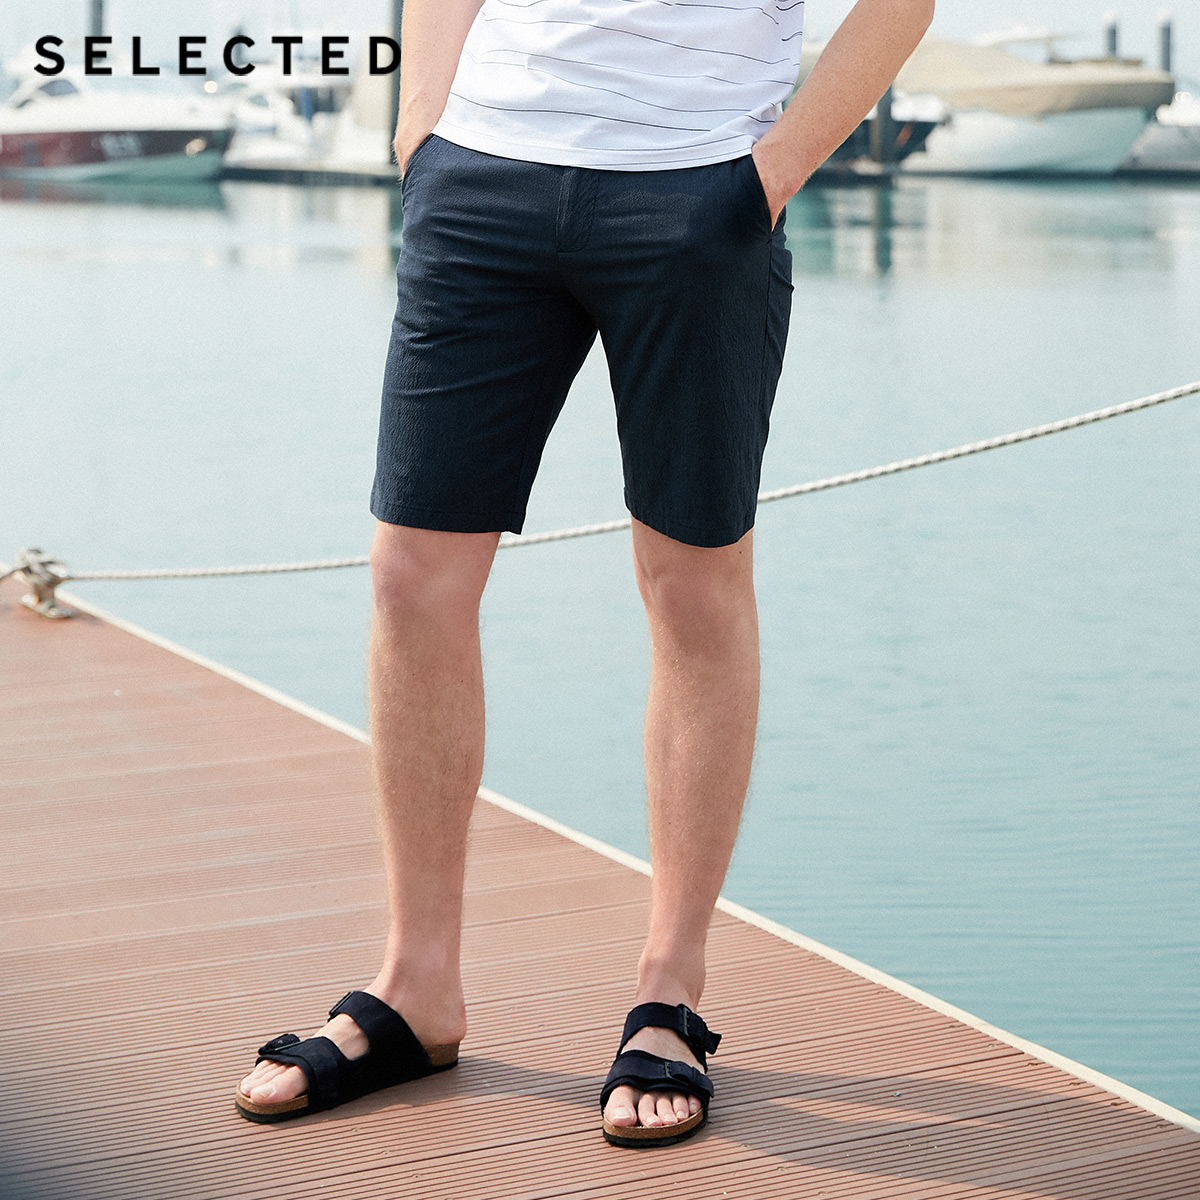 SELECTED Men's Straight Fit Striped Knee-high Shorts S|4192SH536